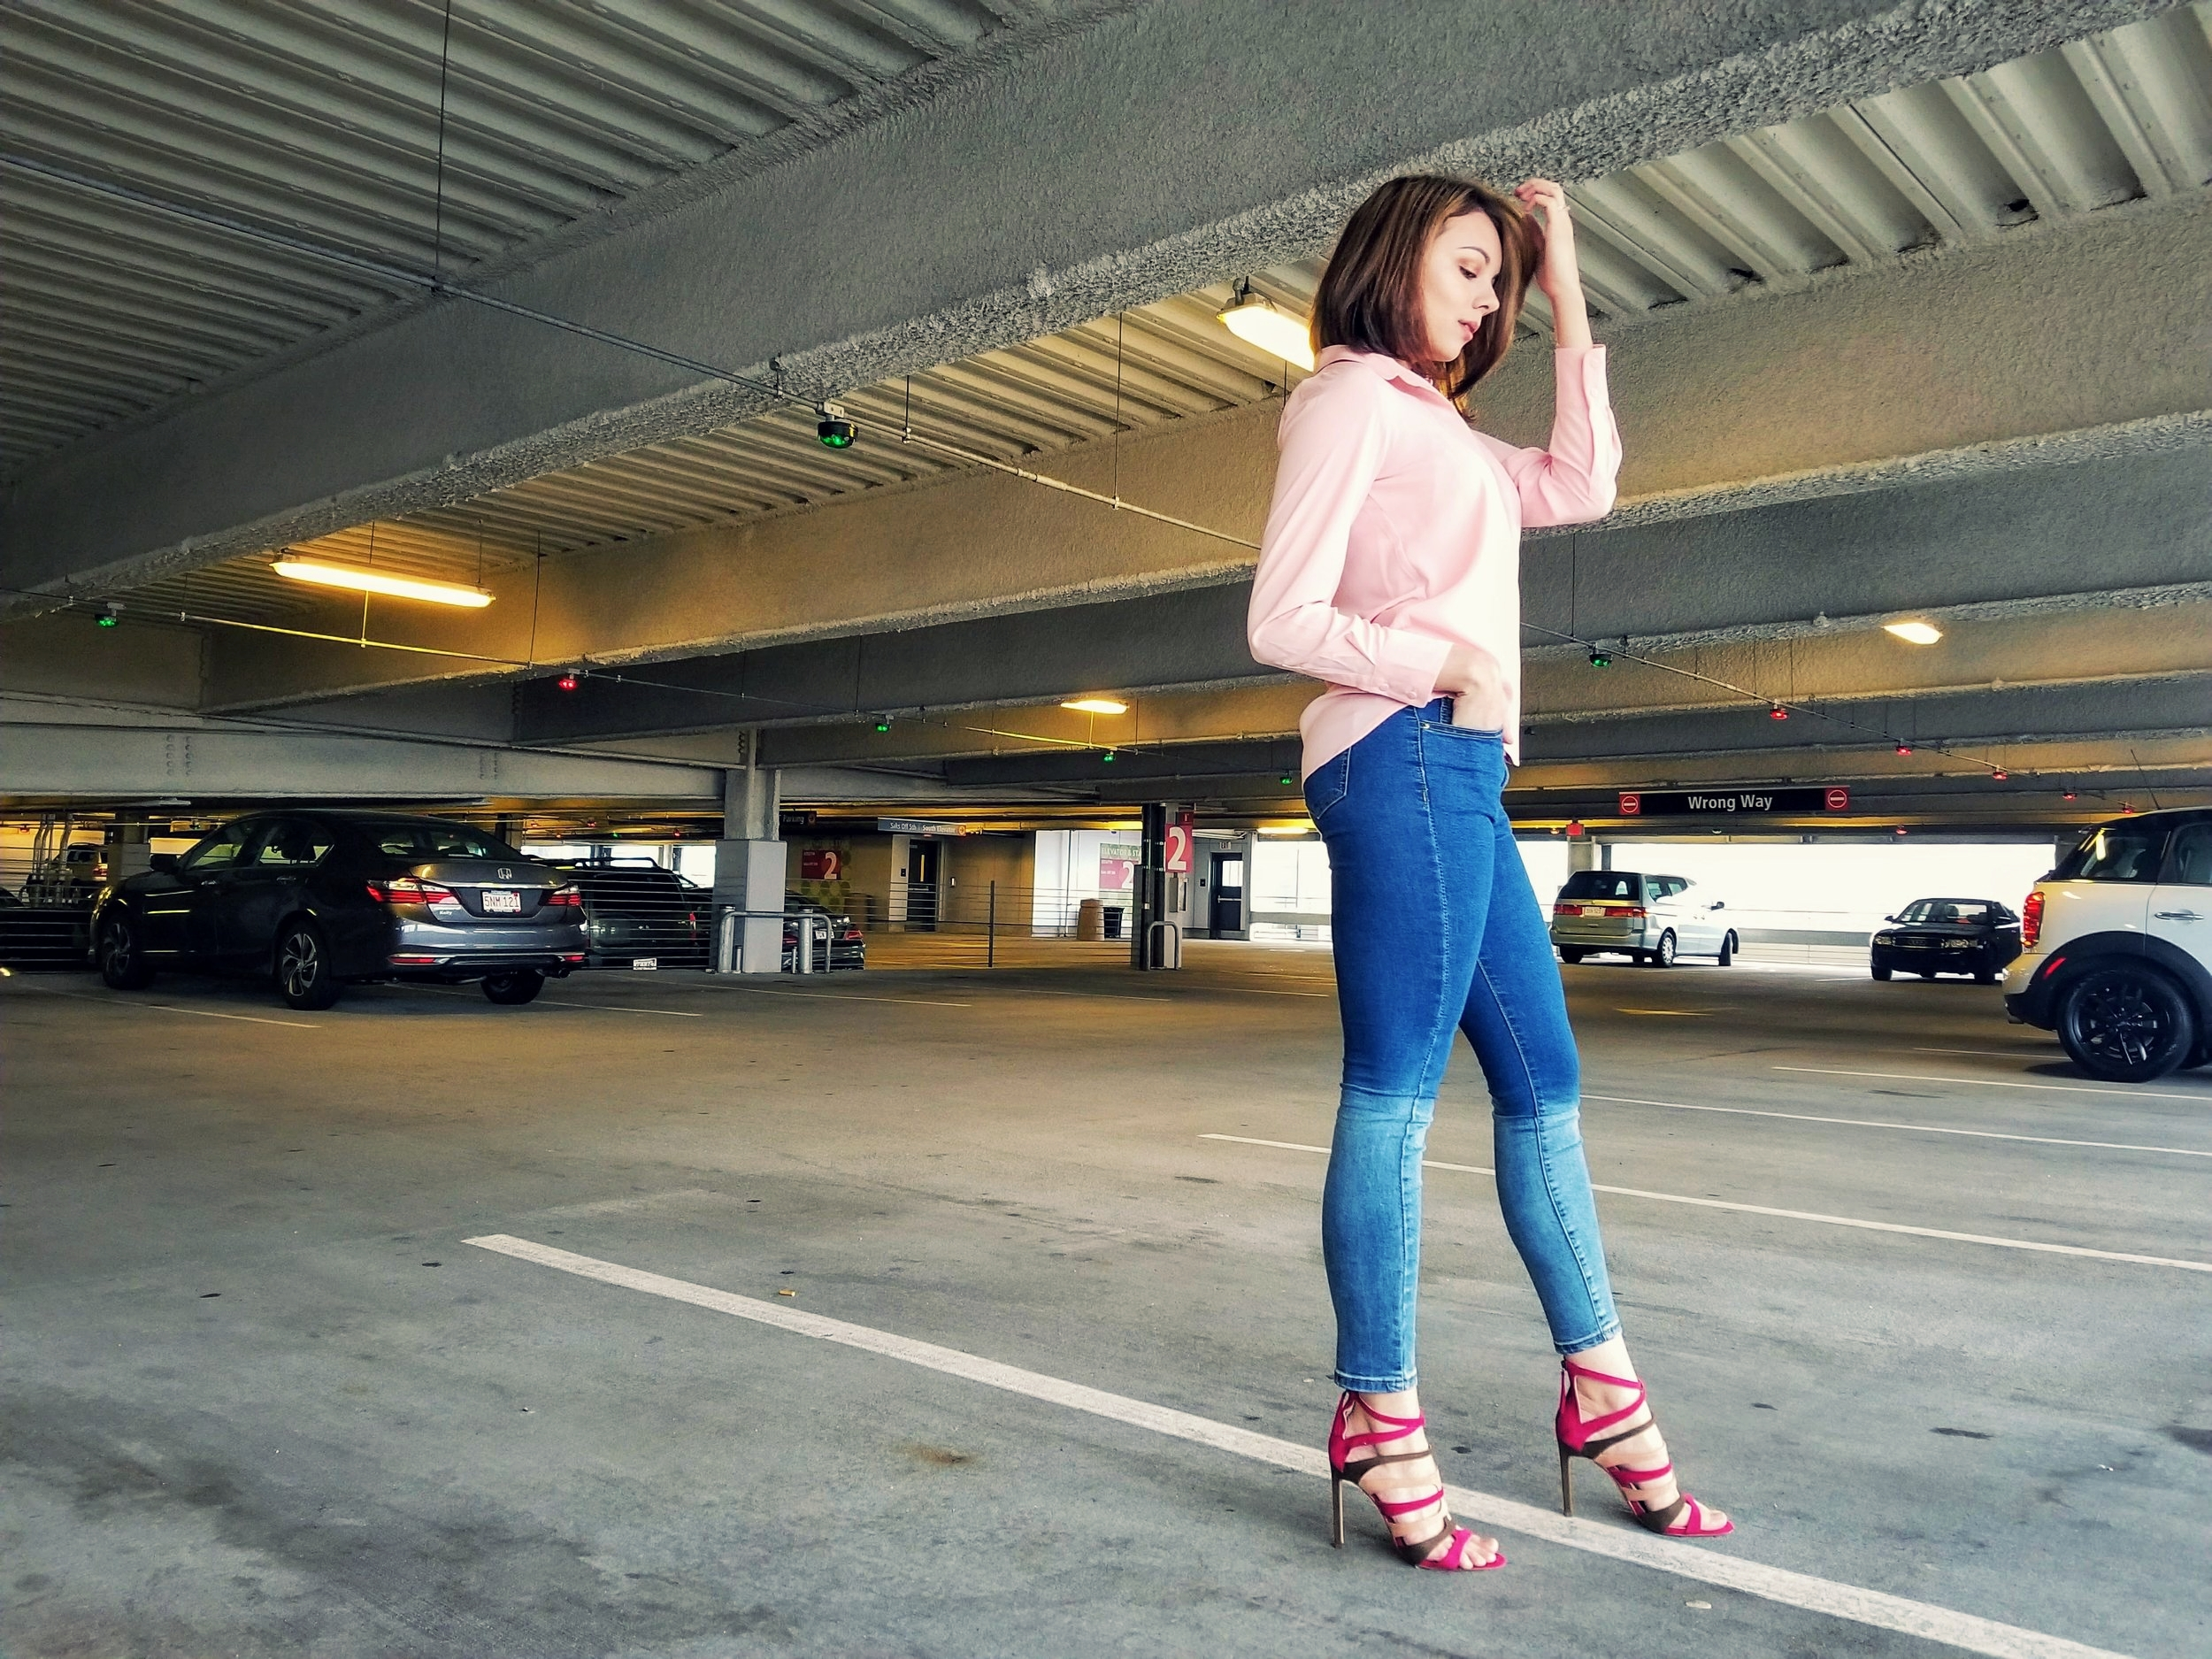 A blogger posing and wearing a pink blouse, cut off pants, and lace up heels.